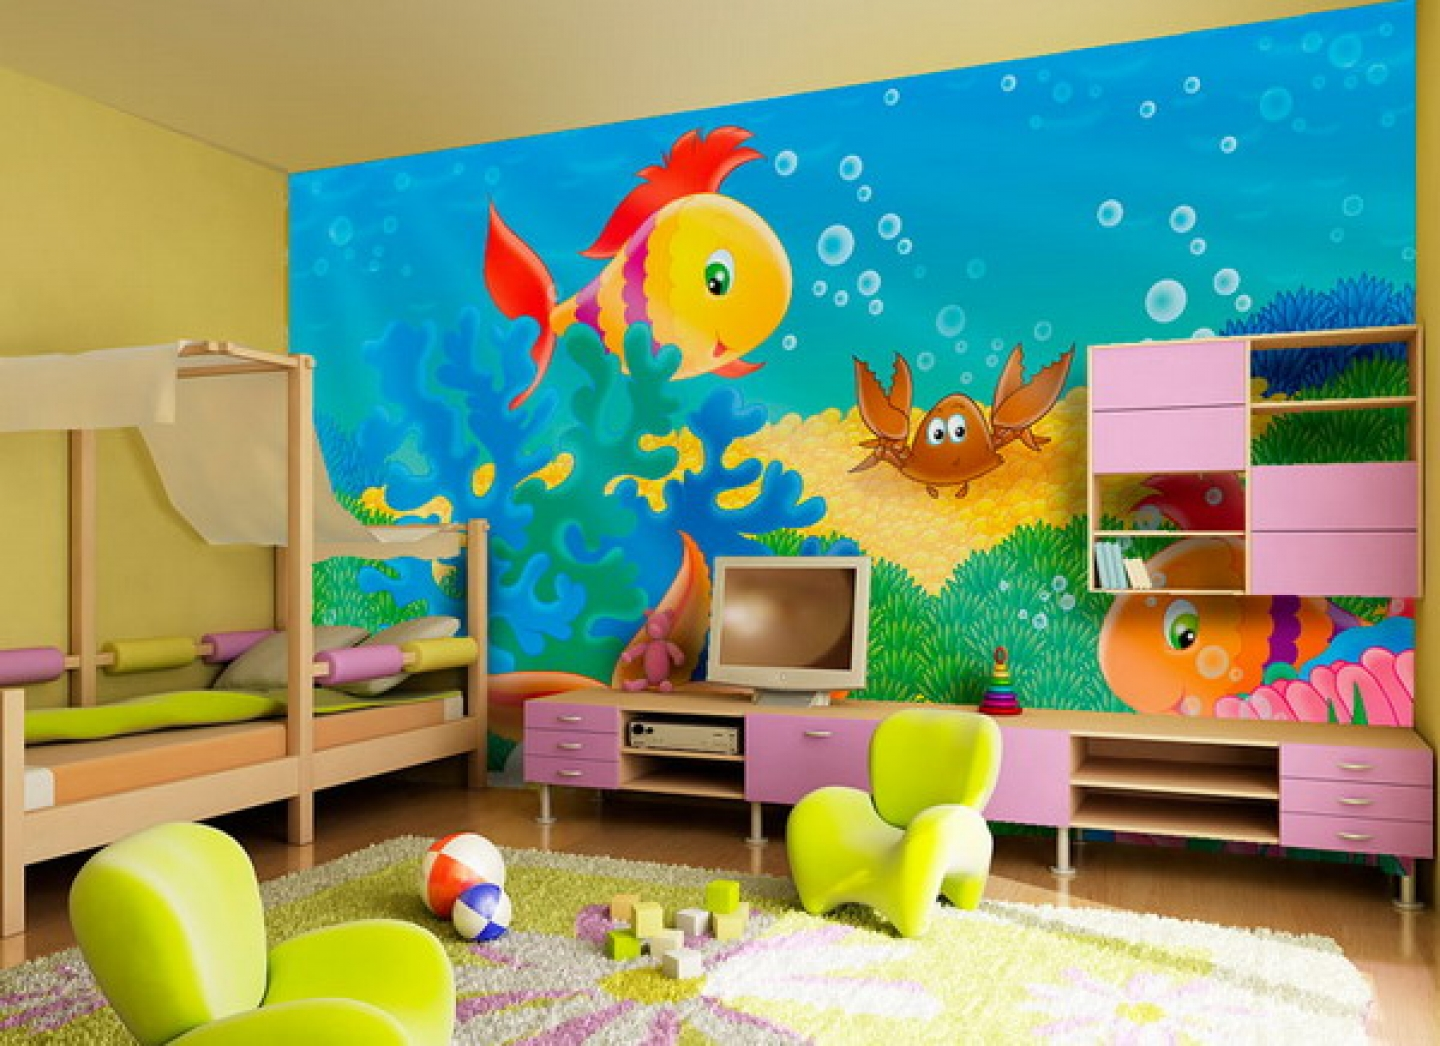 Under Water Theme Loft Bed For Your Children (Image 9 of 10)